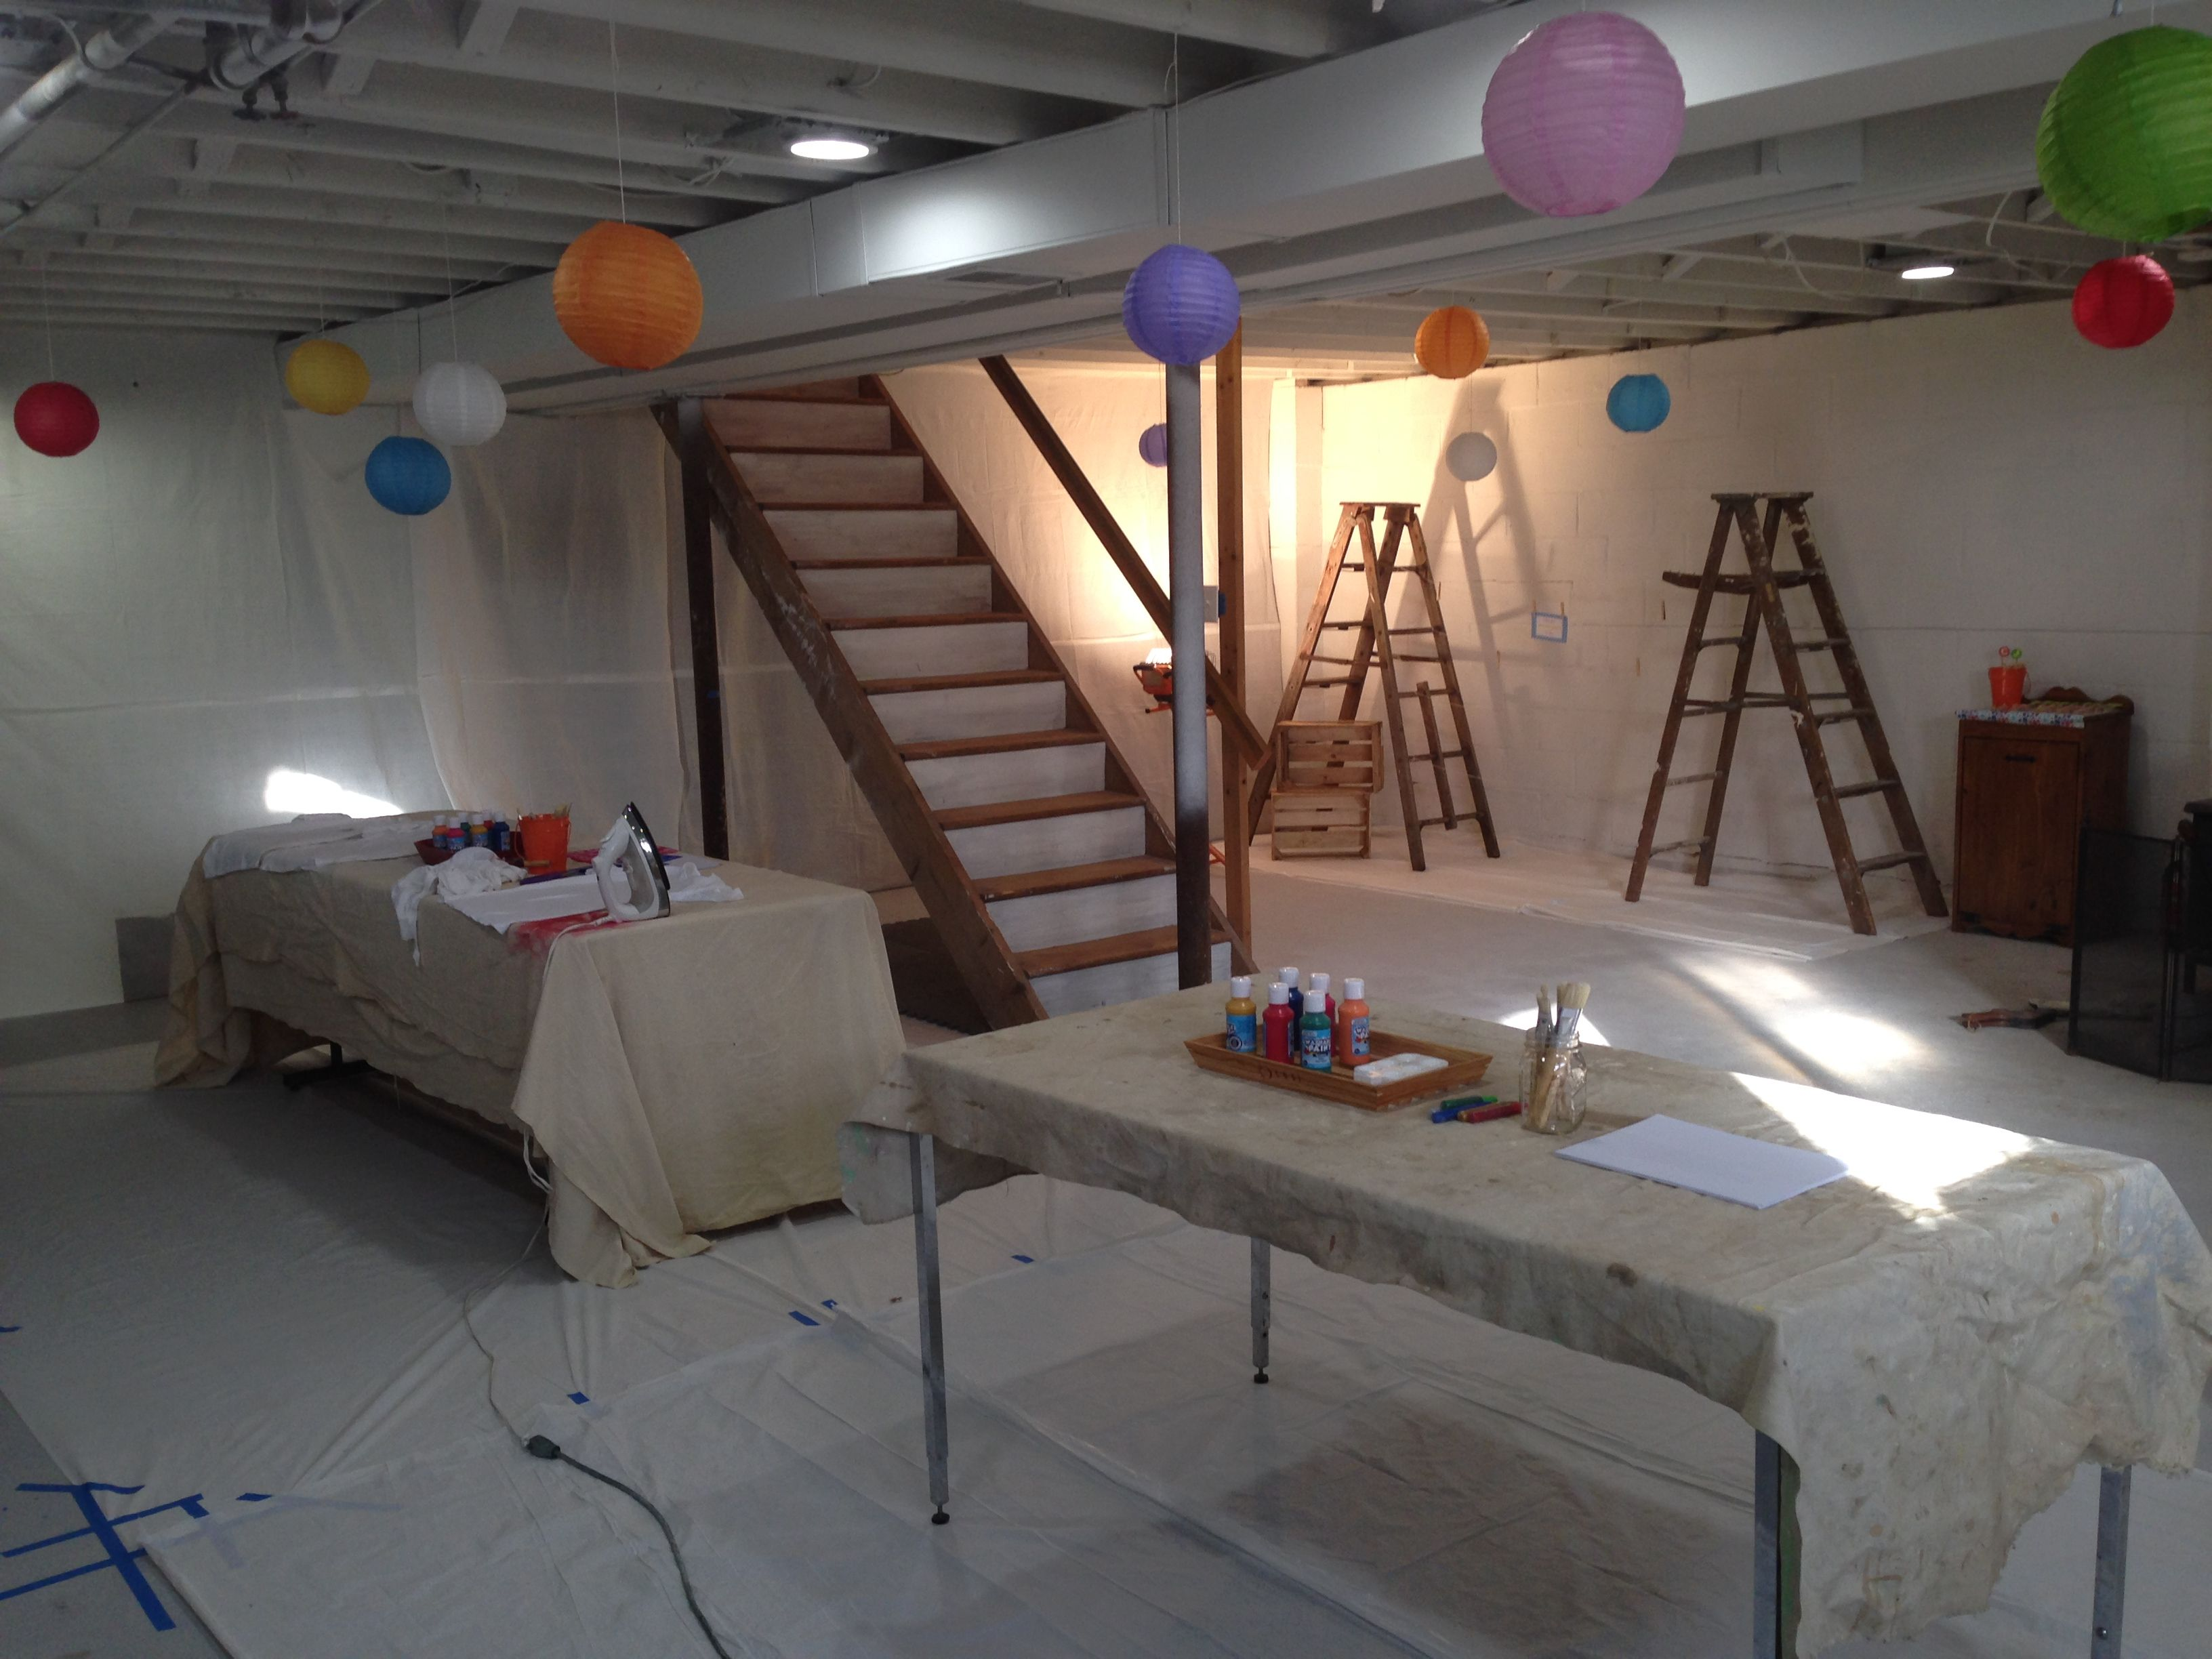 painting party set up in the basement.  drop clothes as table clothes.  paper drop clothes taped to the floor.  and paper lanterns hanging as more rainbow polka dots.